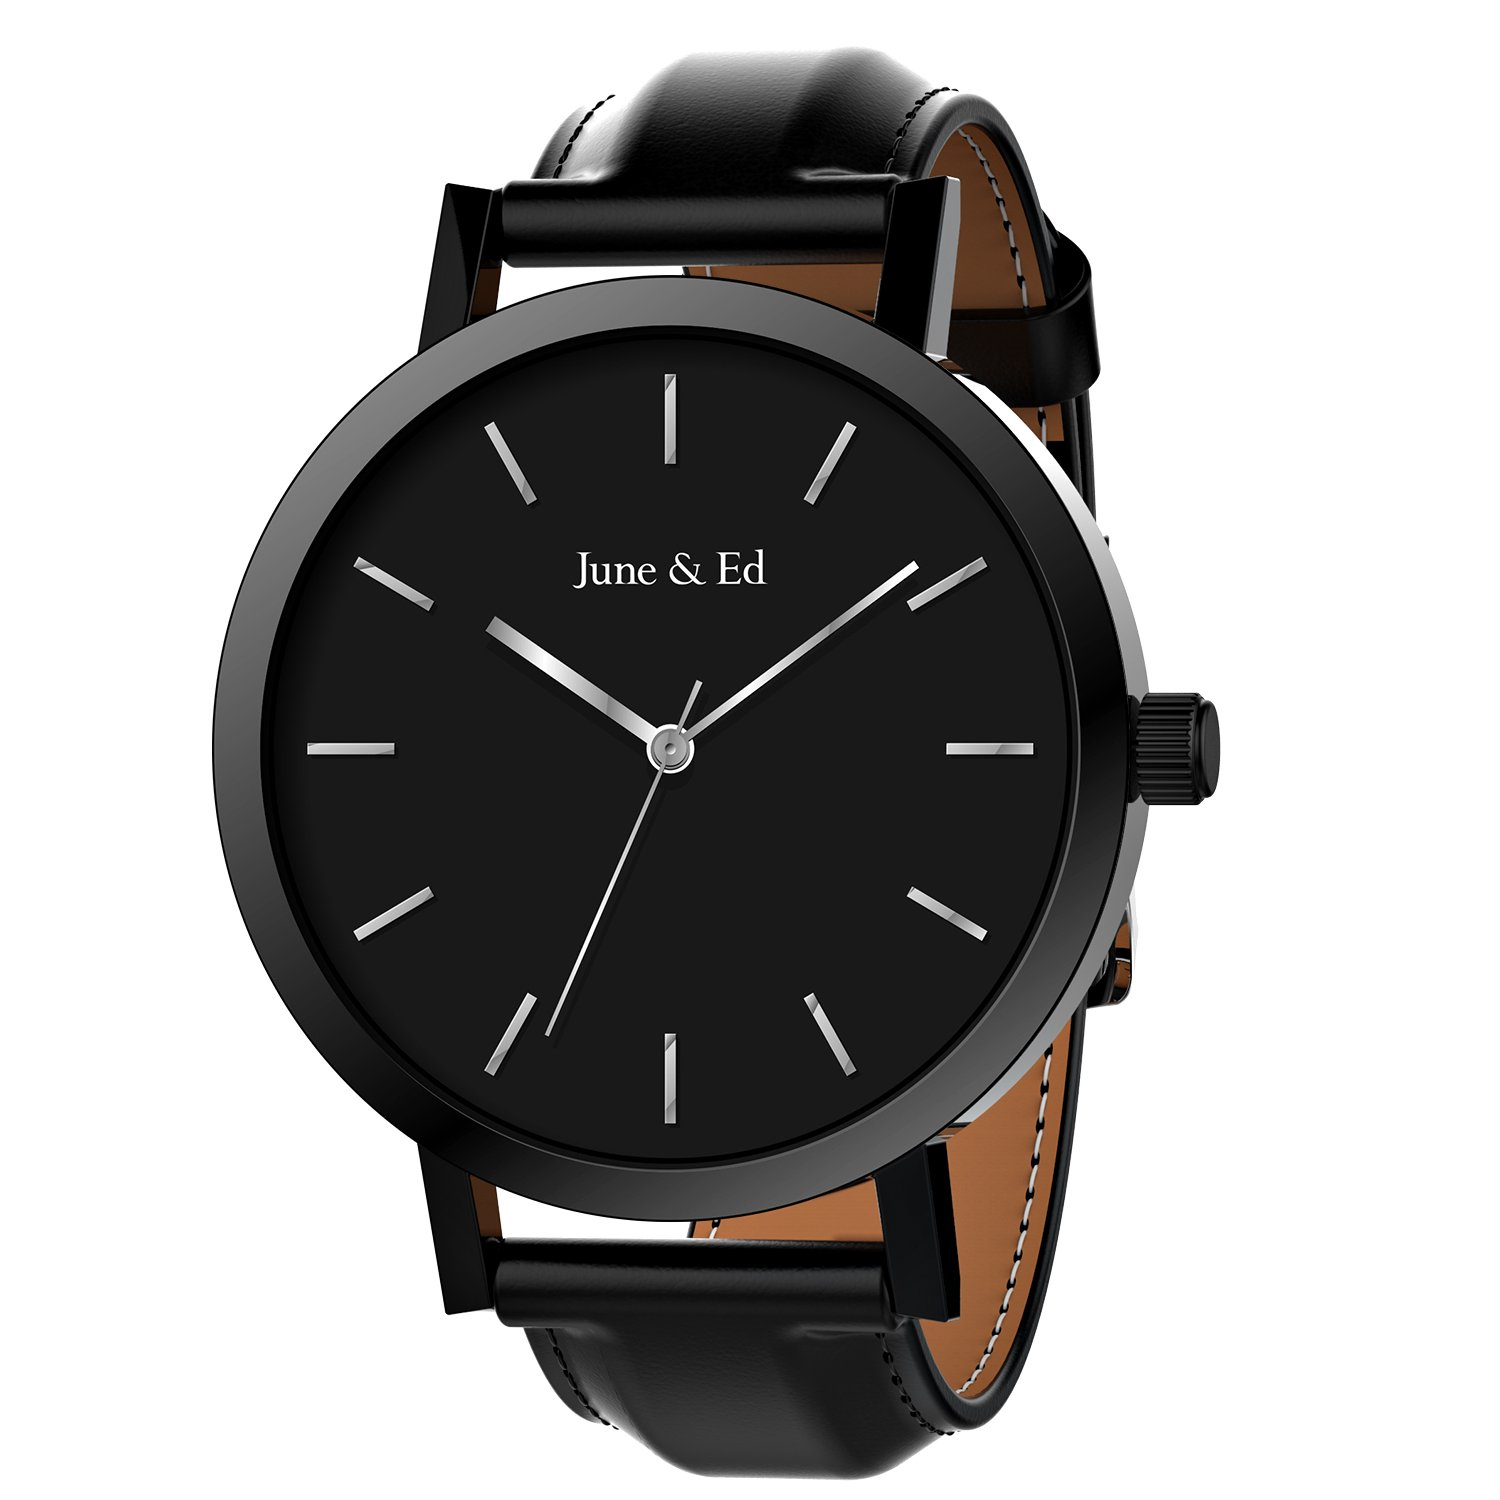 watches review cloud apple bg techcrunch watch